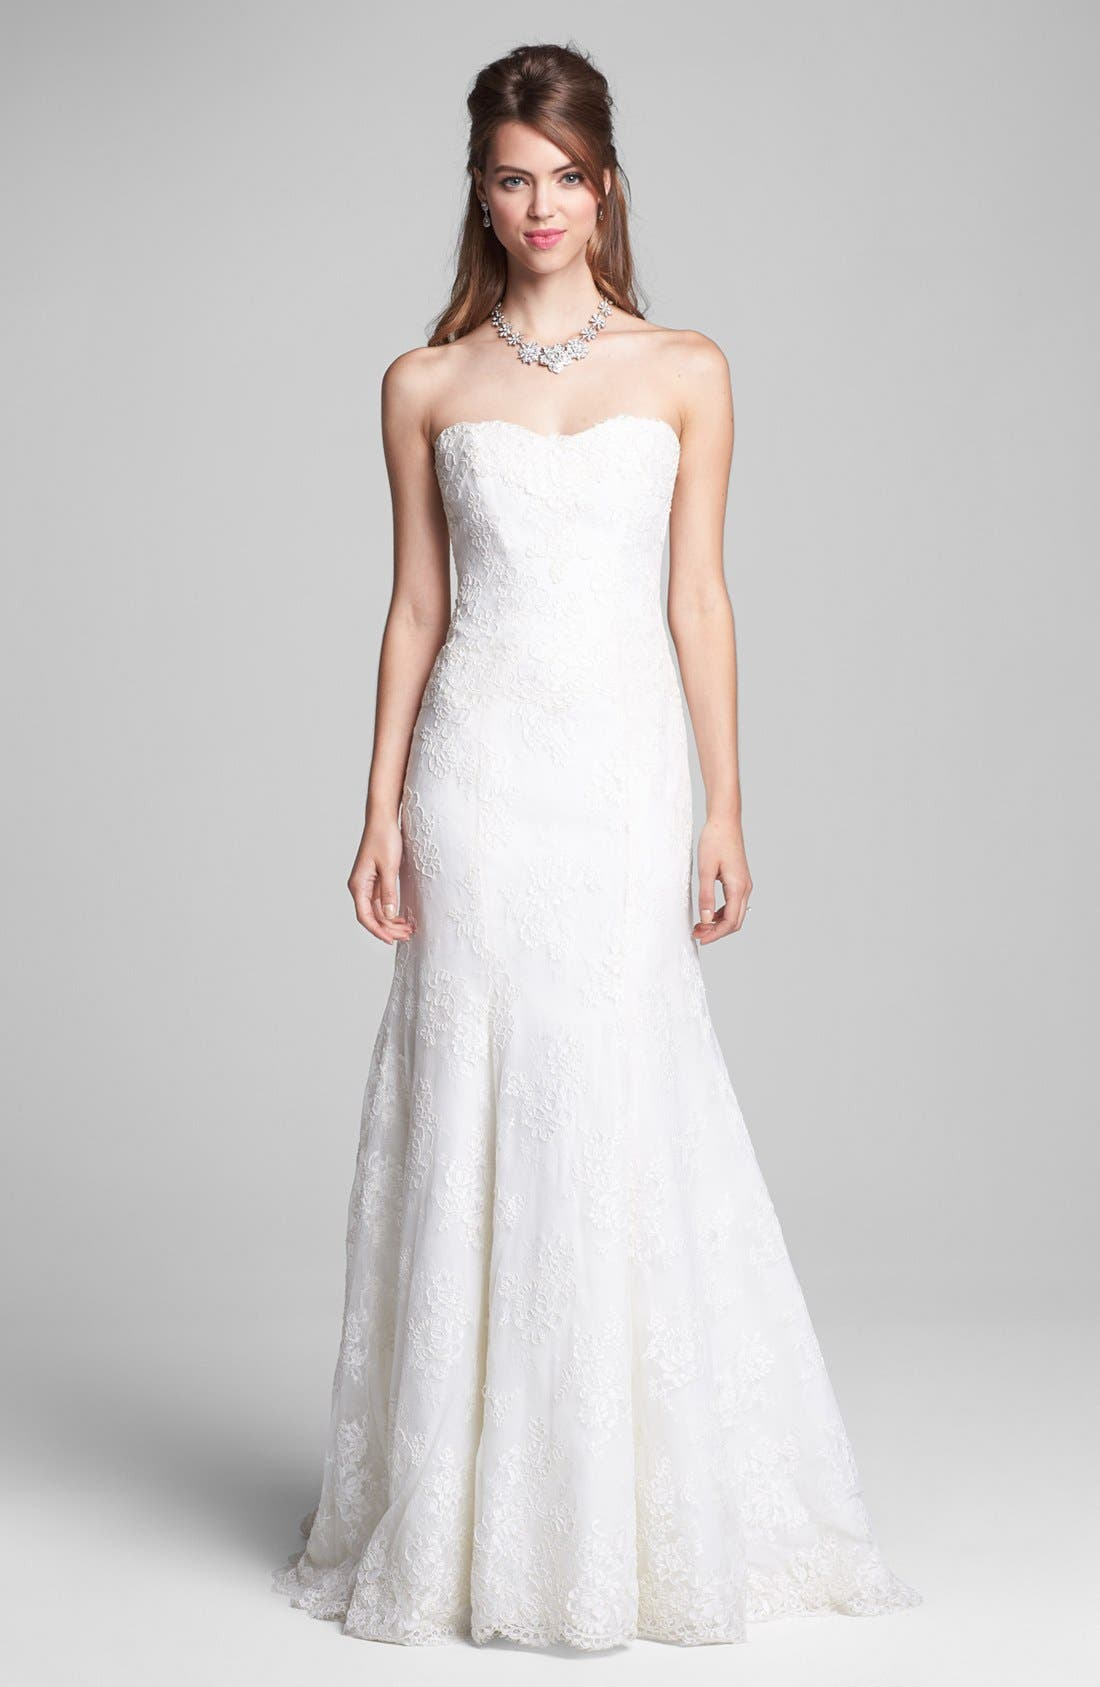 Embroidered Lace Trumpet Dress,                             Alternate thumbnail 4, color,                             900